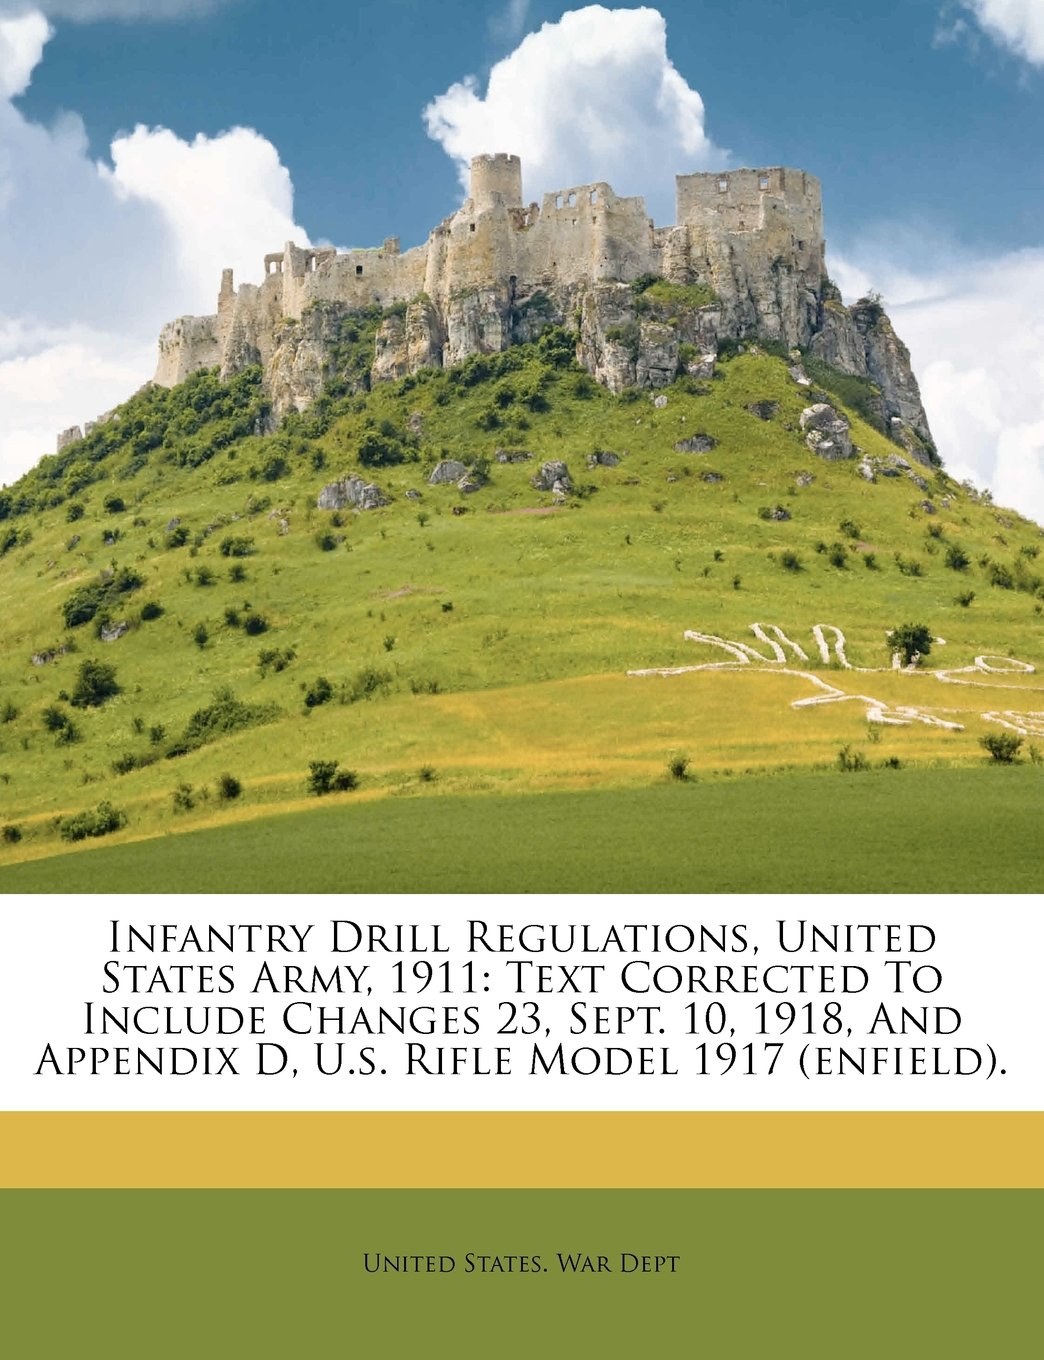 Infantry Drill Regulations, United States Army, 1911: Text Corrected To Include Changes 23, Sept. 10, 1918, And Appendix D, U.s. Rifle Model 1917 (enfield). ebook